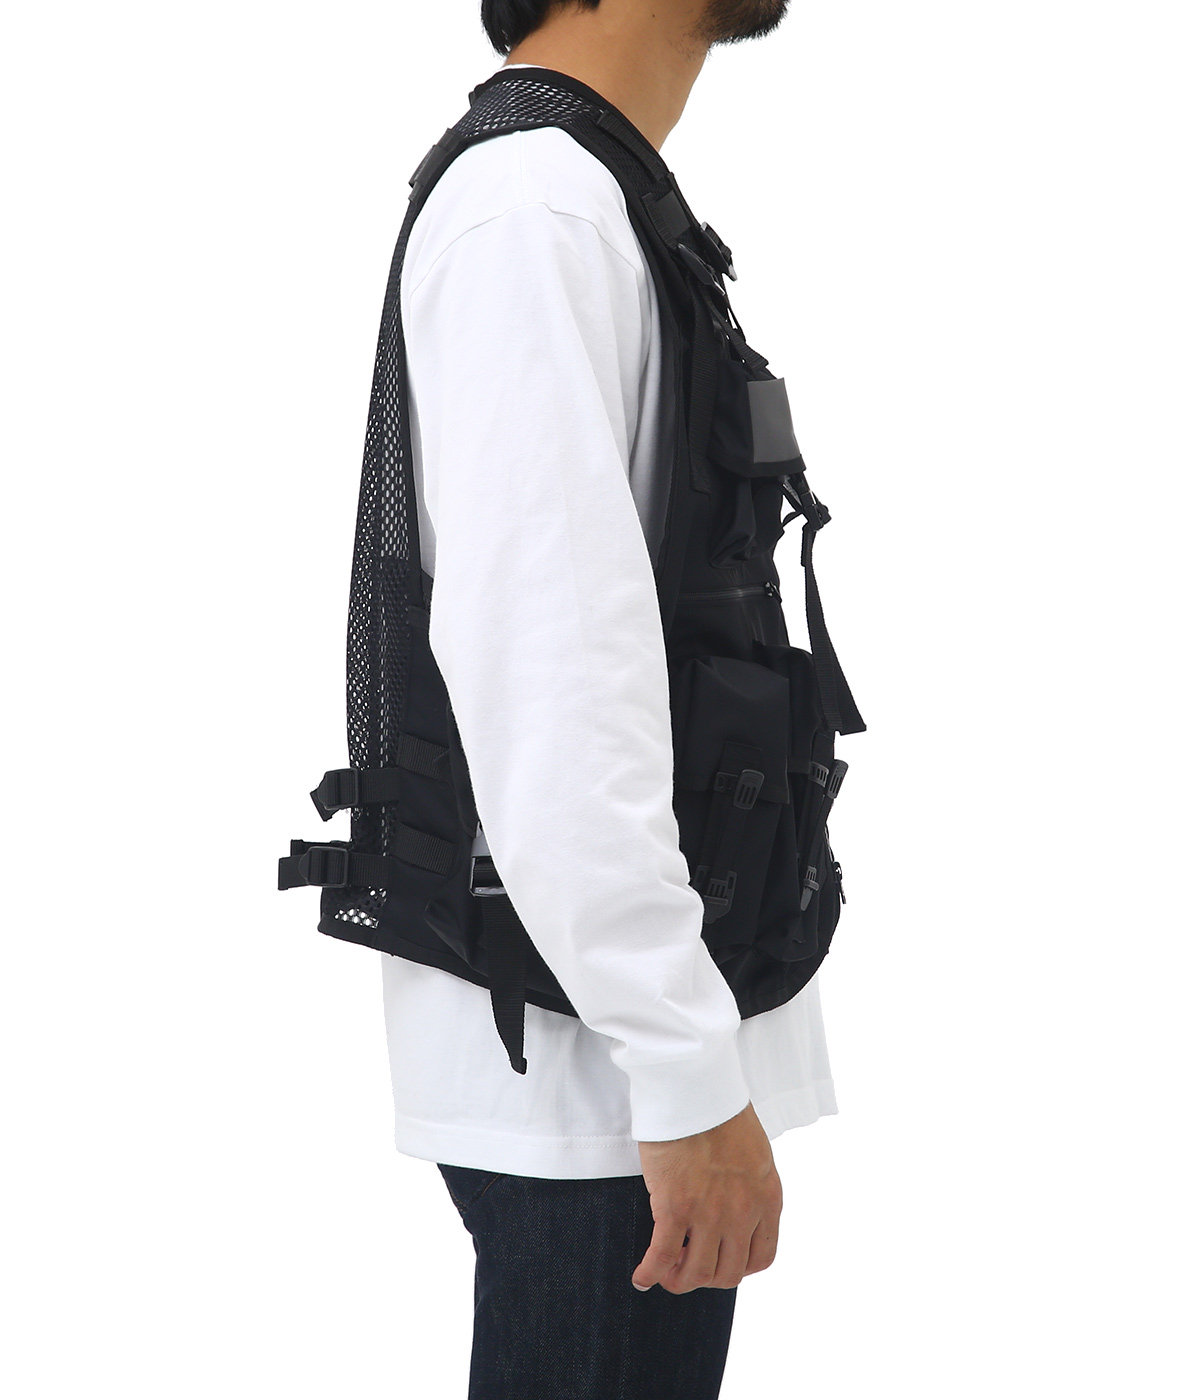 TACTICAL VEST (Limited to 18)